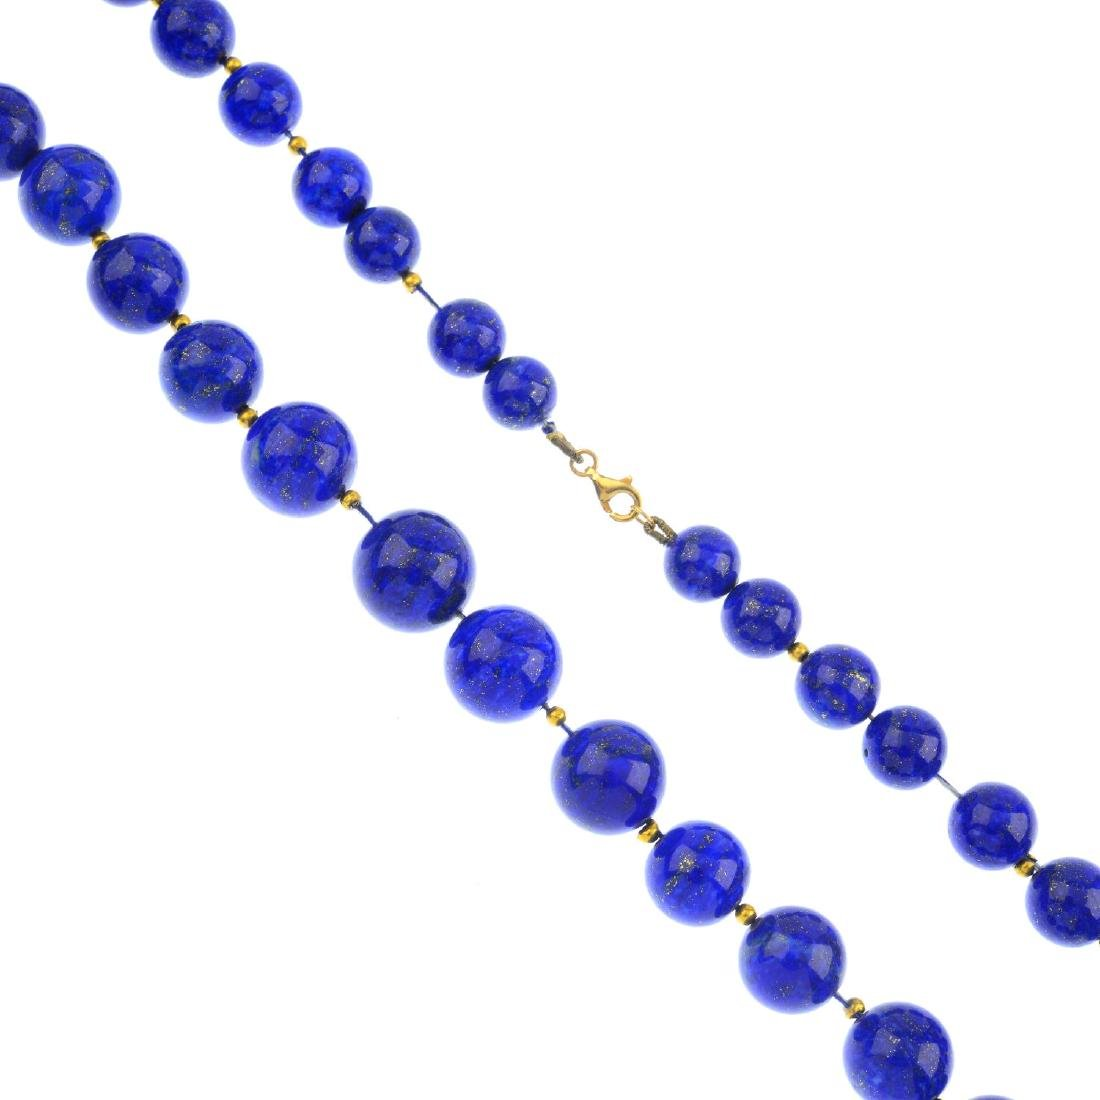 A lapis lazuli single-strand necklace. Comprising